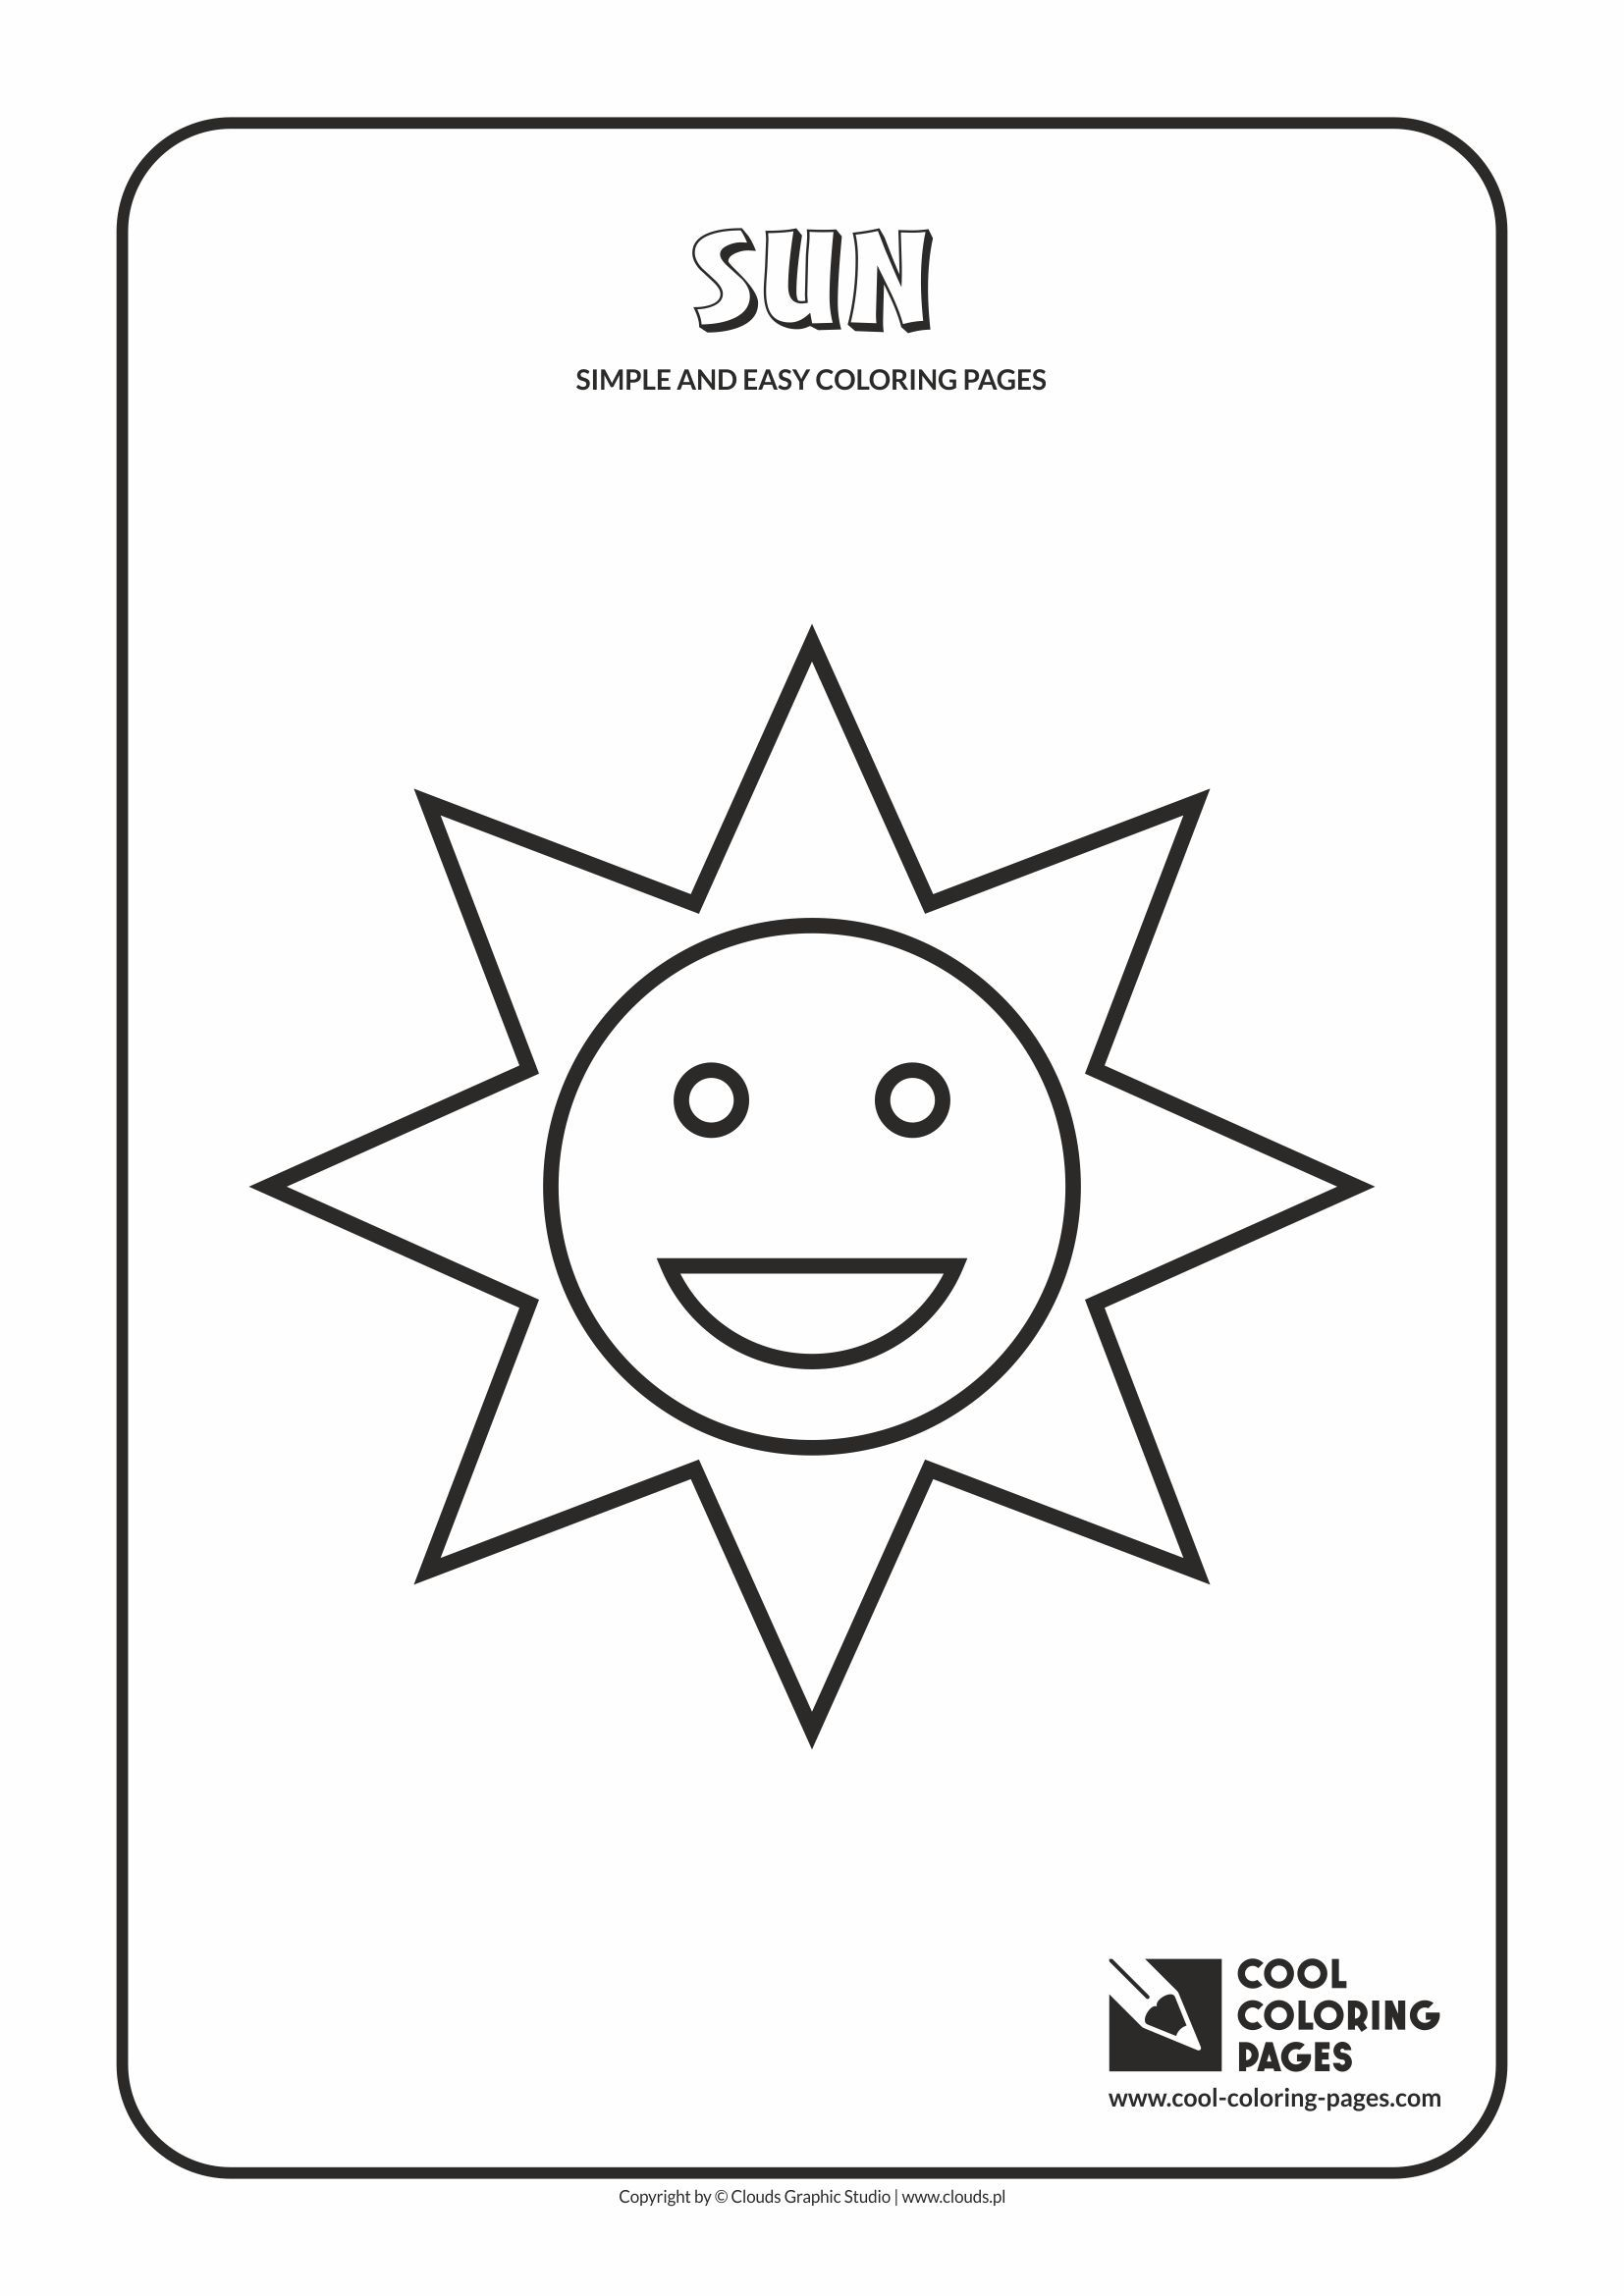 simple and easy coloring pages for toddlers sun simple and easy